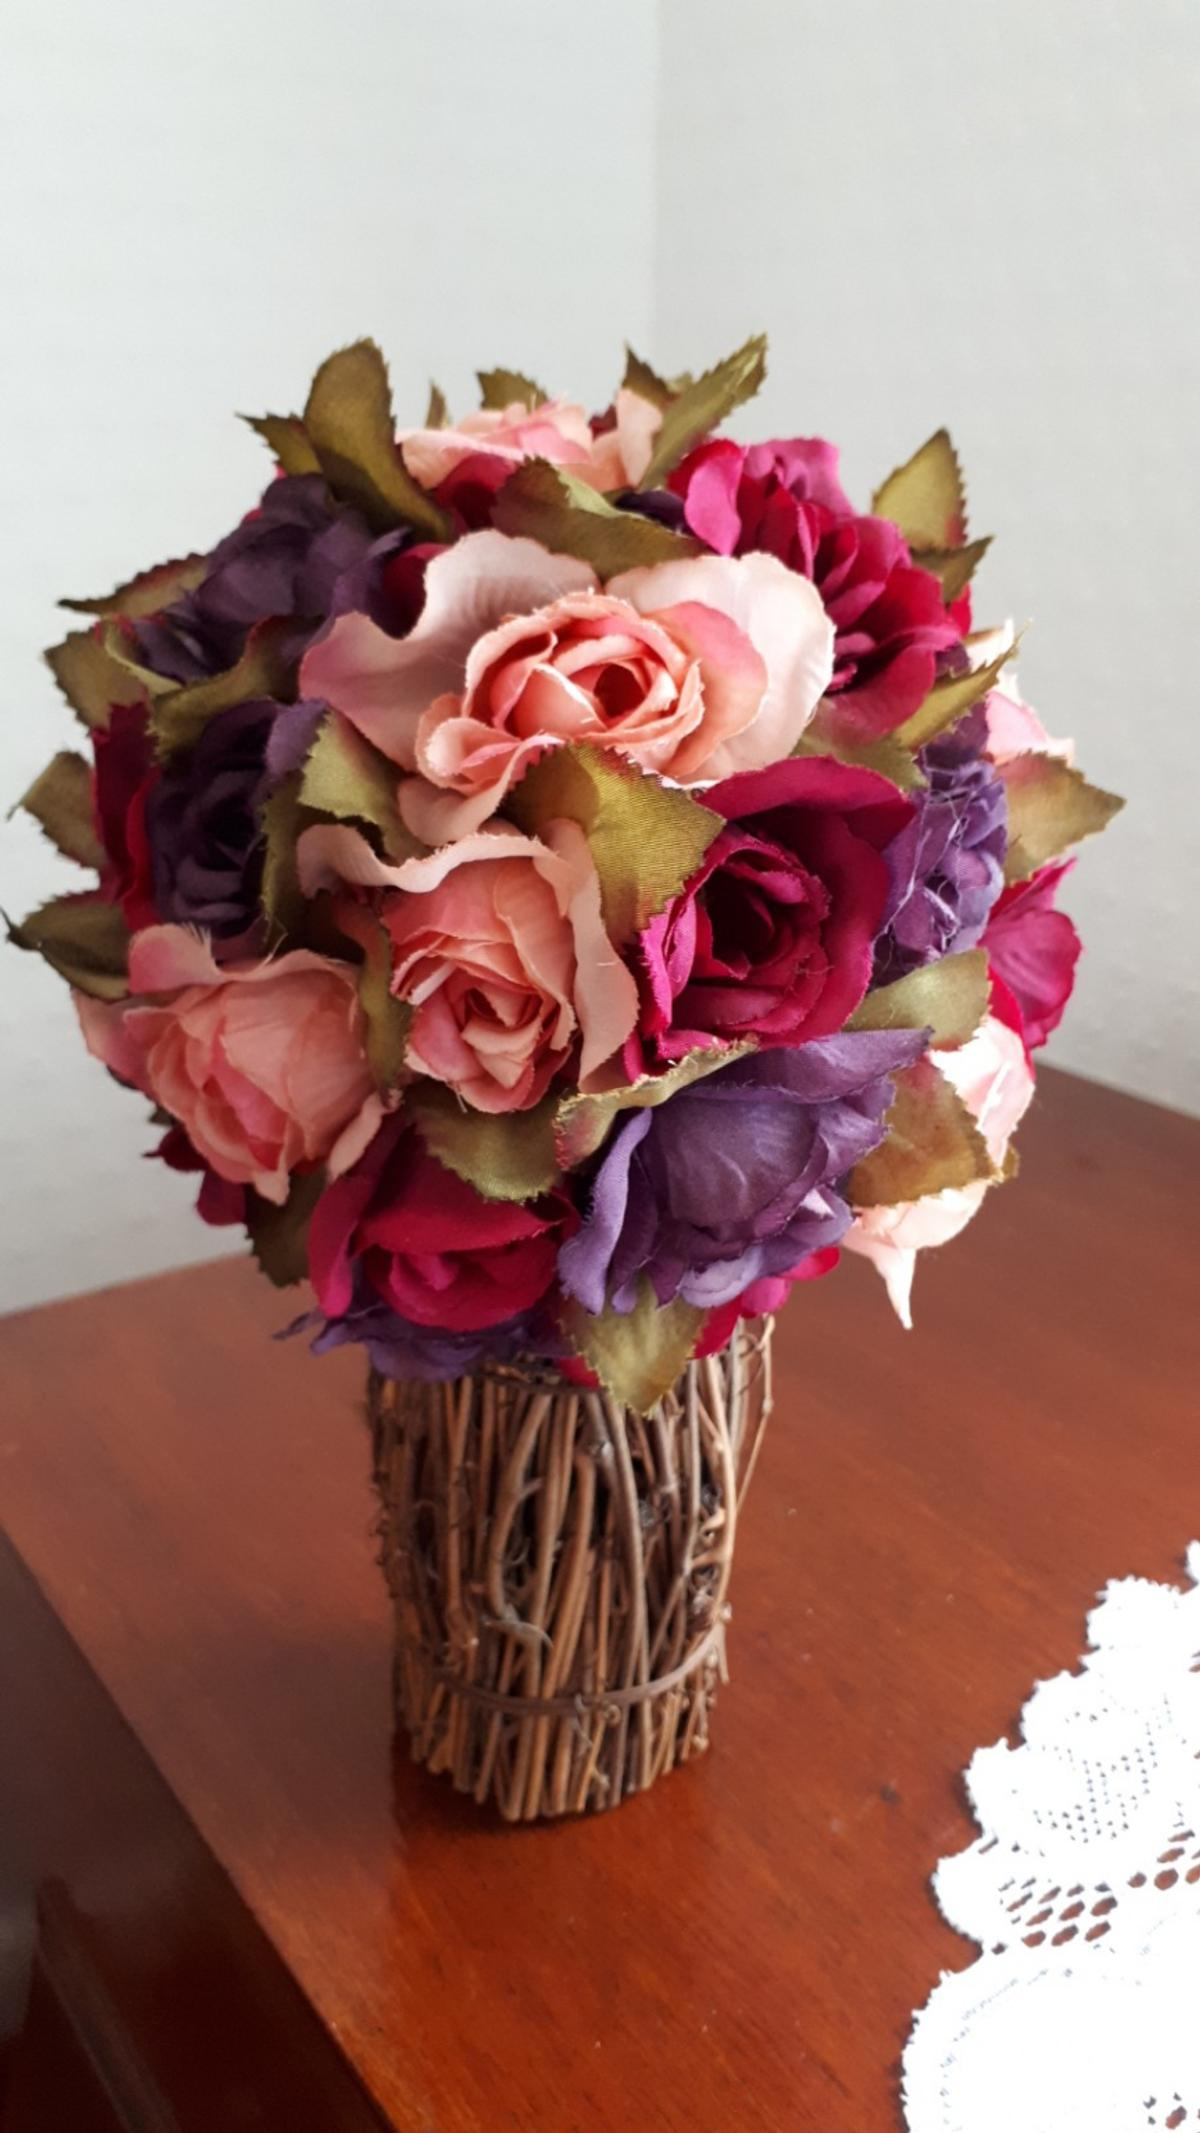 AS ABOVE,LOVELY COLOURFUL ARTIFICIAL FLOWER ARRANGEMENT,STEM IS MADE WOOD BRANCHES,FASTENED TOGETHER,THIS HAS A ROUND BOTTOM WITH FELT ATTACHED SO IT DOSENT SCRATCH U SURFACES STANDS UP ON ITS OWN,THIS HAS BEEN USED,BUT IN VGC, COLLECTION ONLY I DO NOT POST,COLLECTION MANS WOODHOUSE